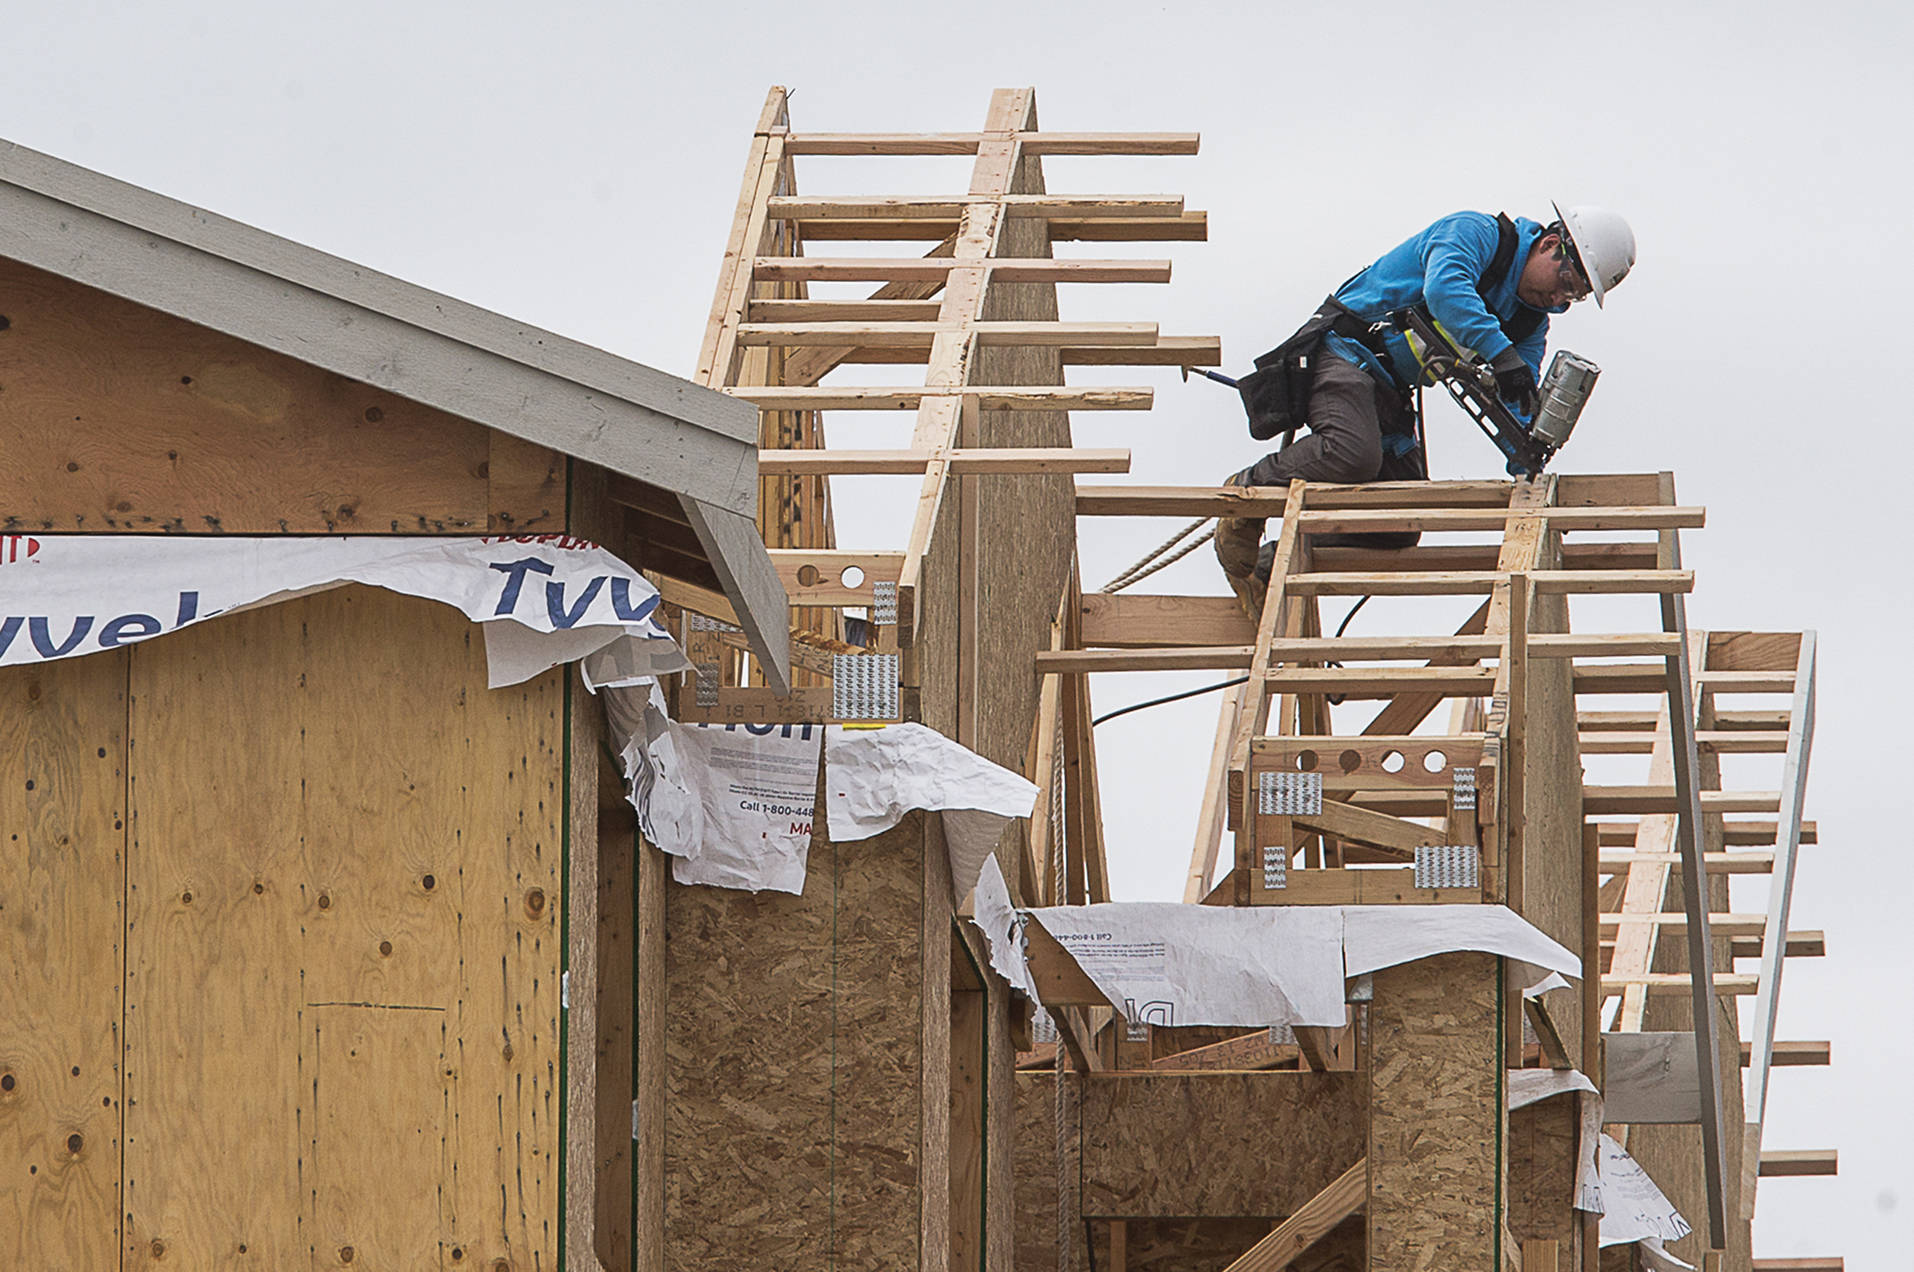 B.C.'s construction industry continues to be the No. 1 employer in B.C.'s goods sector, with more than 219,500 people relying directly on construction for a paycheque. (Black Press Media file photo)